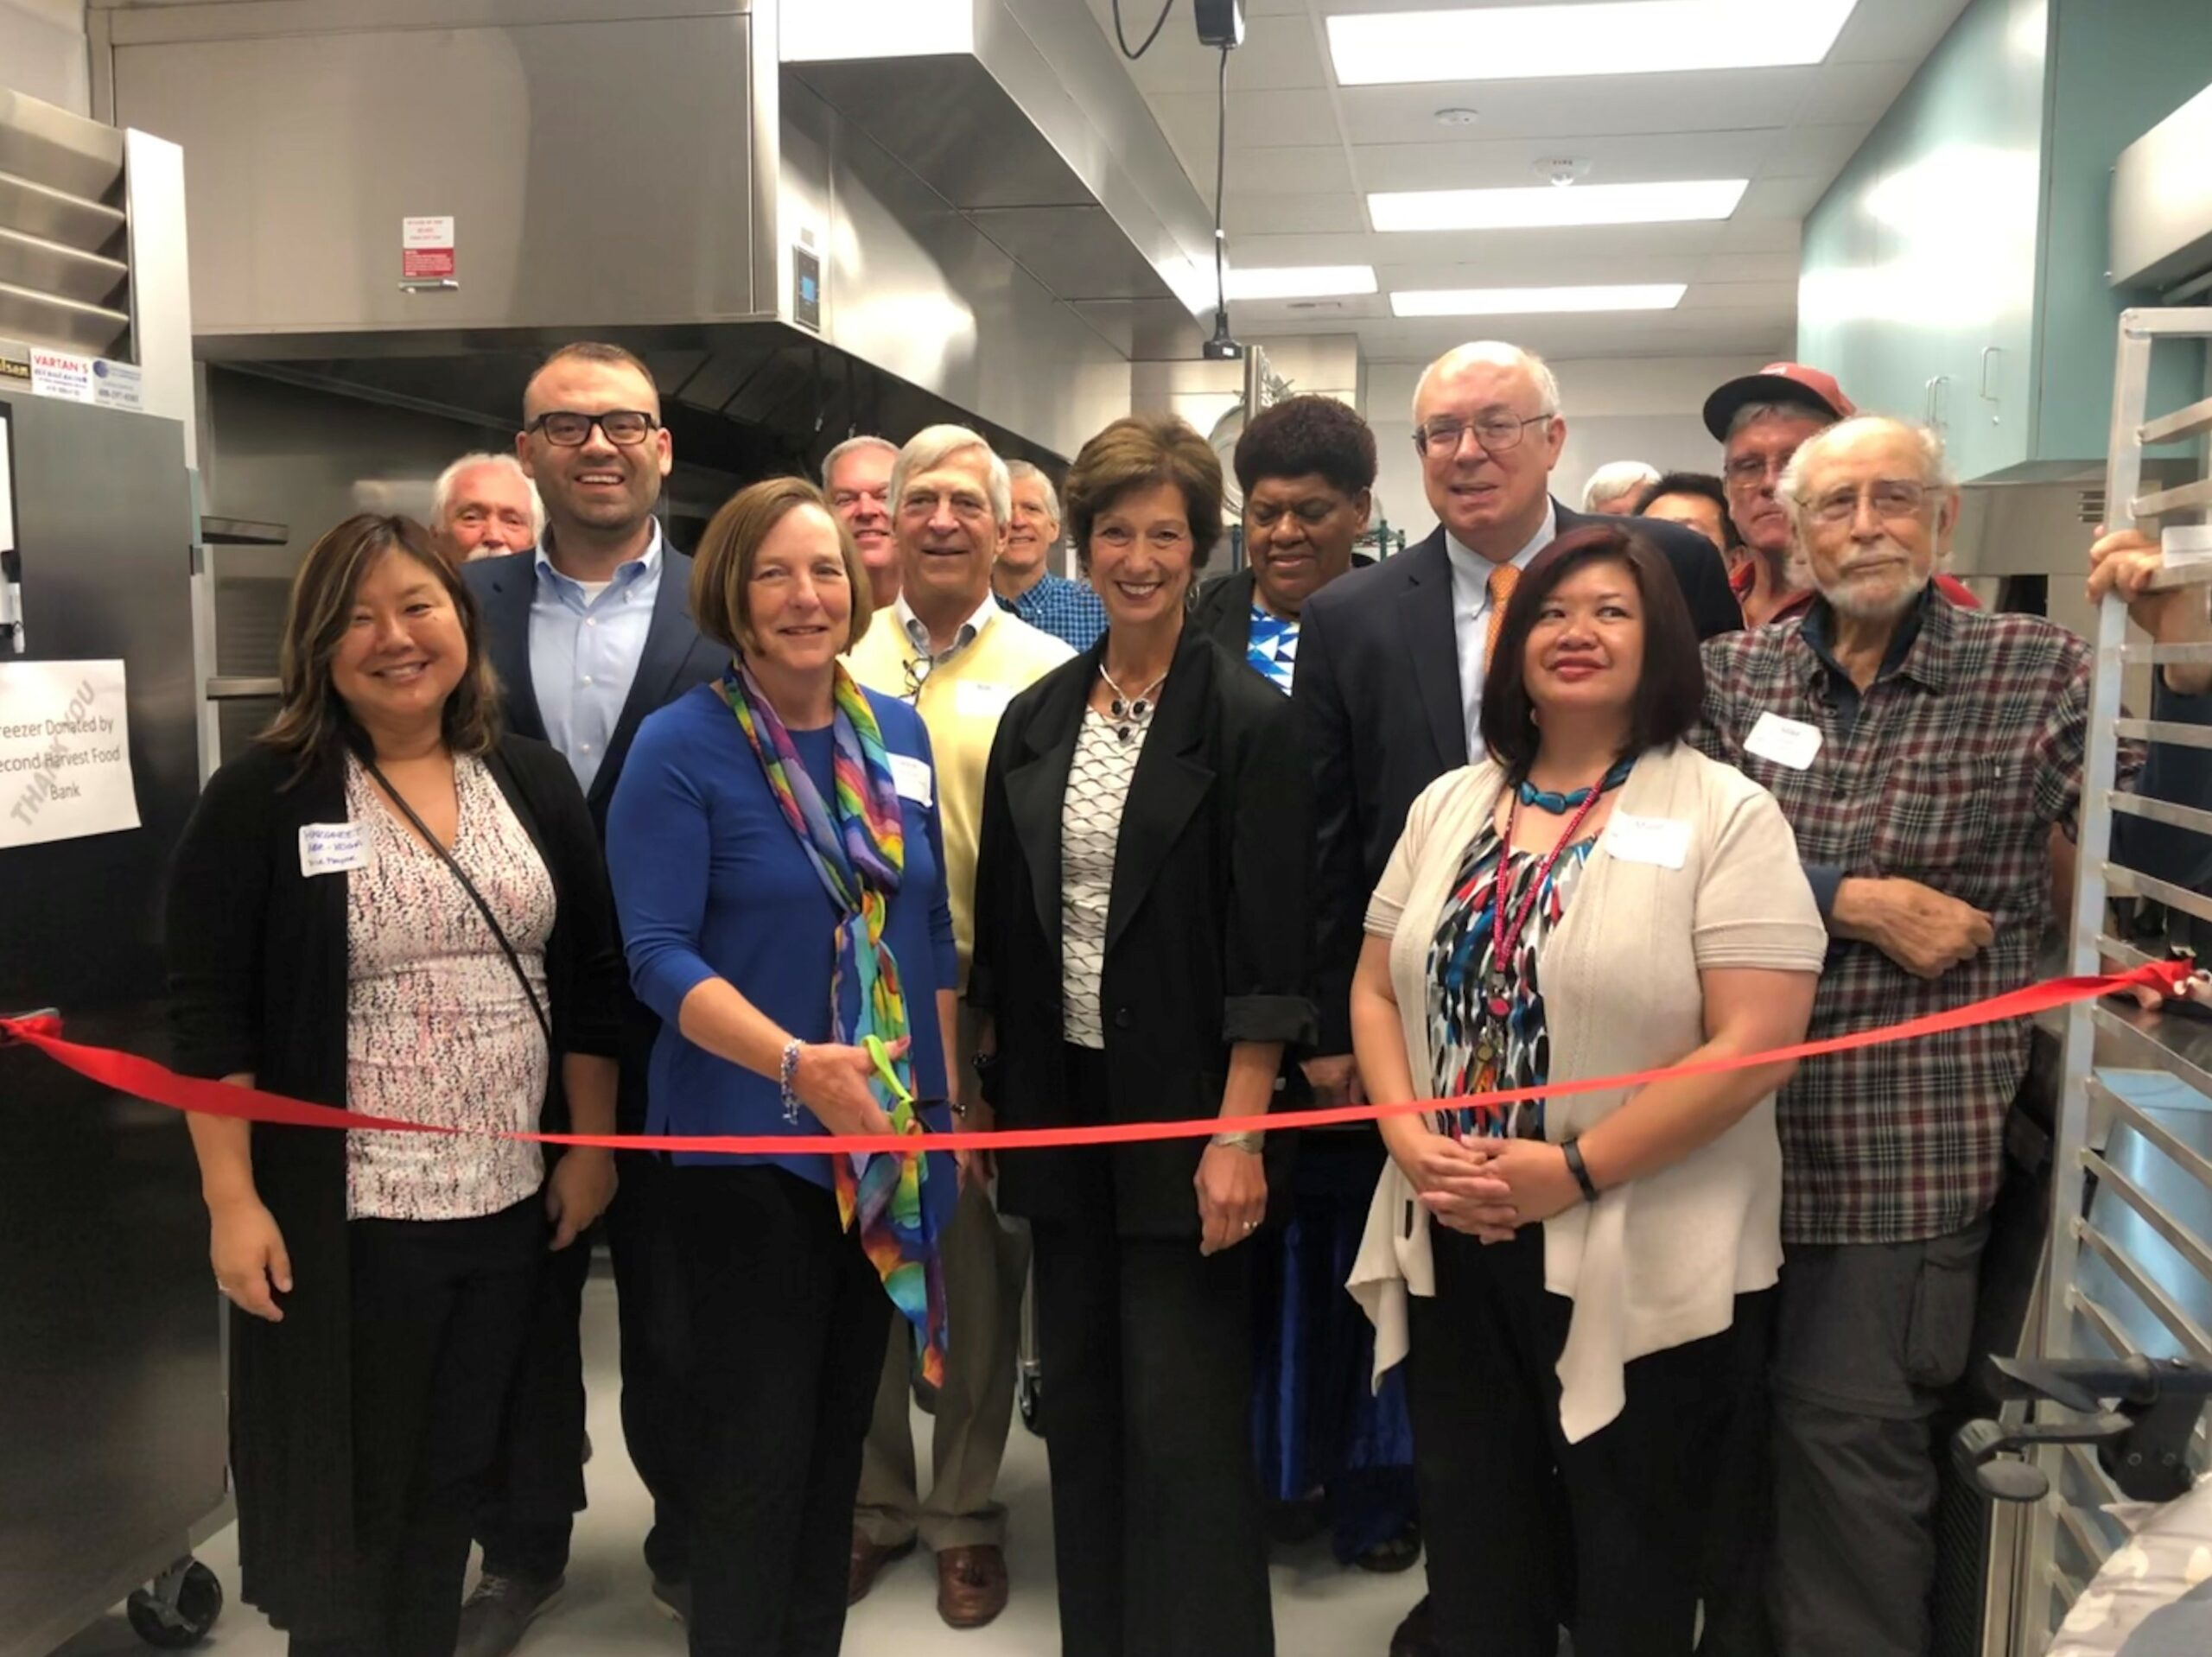 At the grand opening of Hope's Kitchen, May 15, 2019